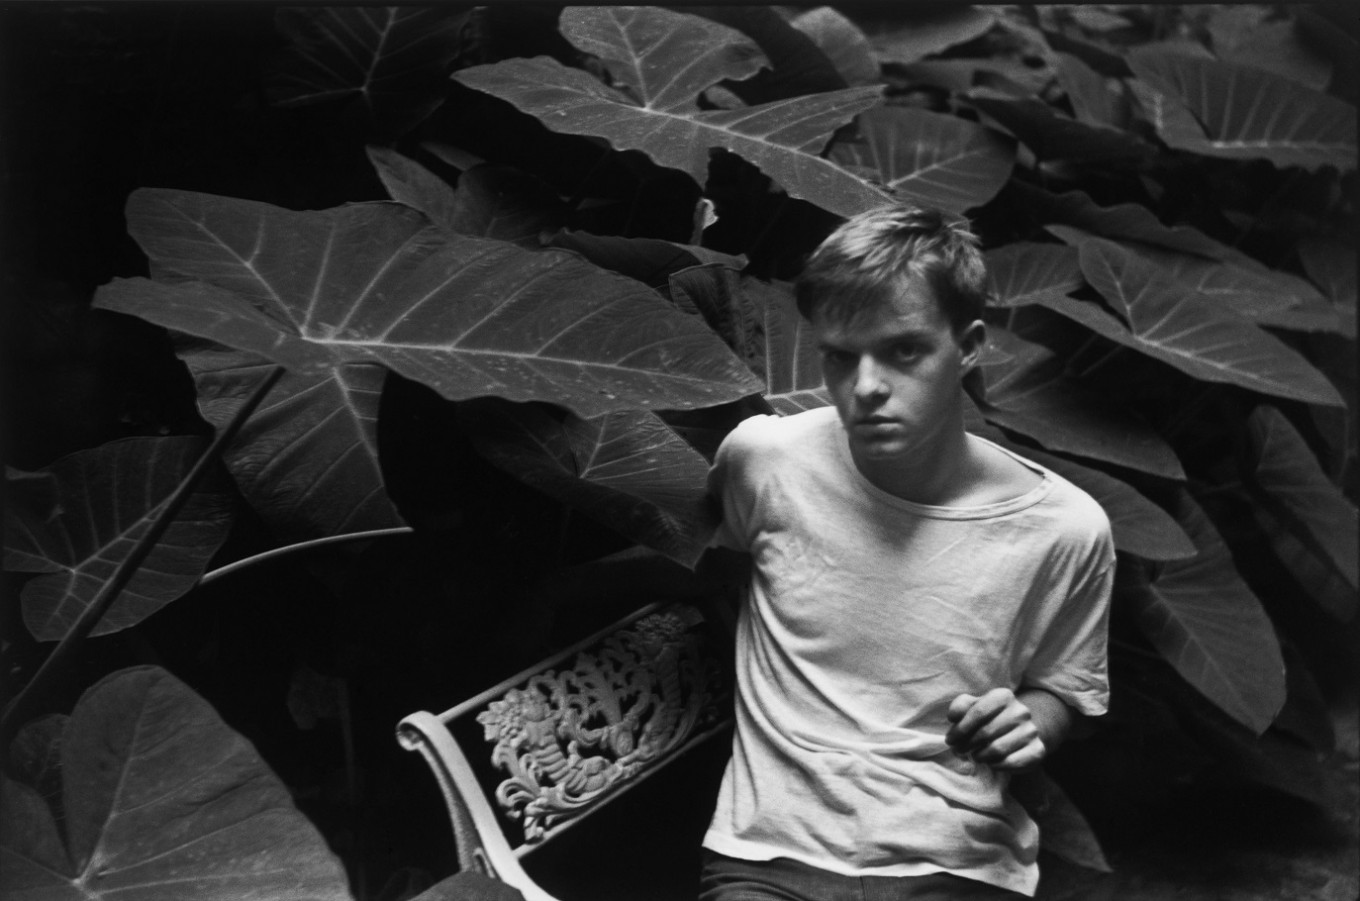 Portrait of the American writer Truman Capote, in New Orleans, USA, in July 1946 when Henri Cartier-Bresson toured the States with another writer and his then wife, Ratna, Images a la Sauvette (Verve 1952) p 68.